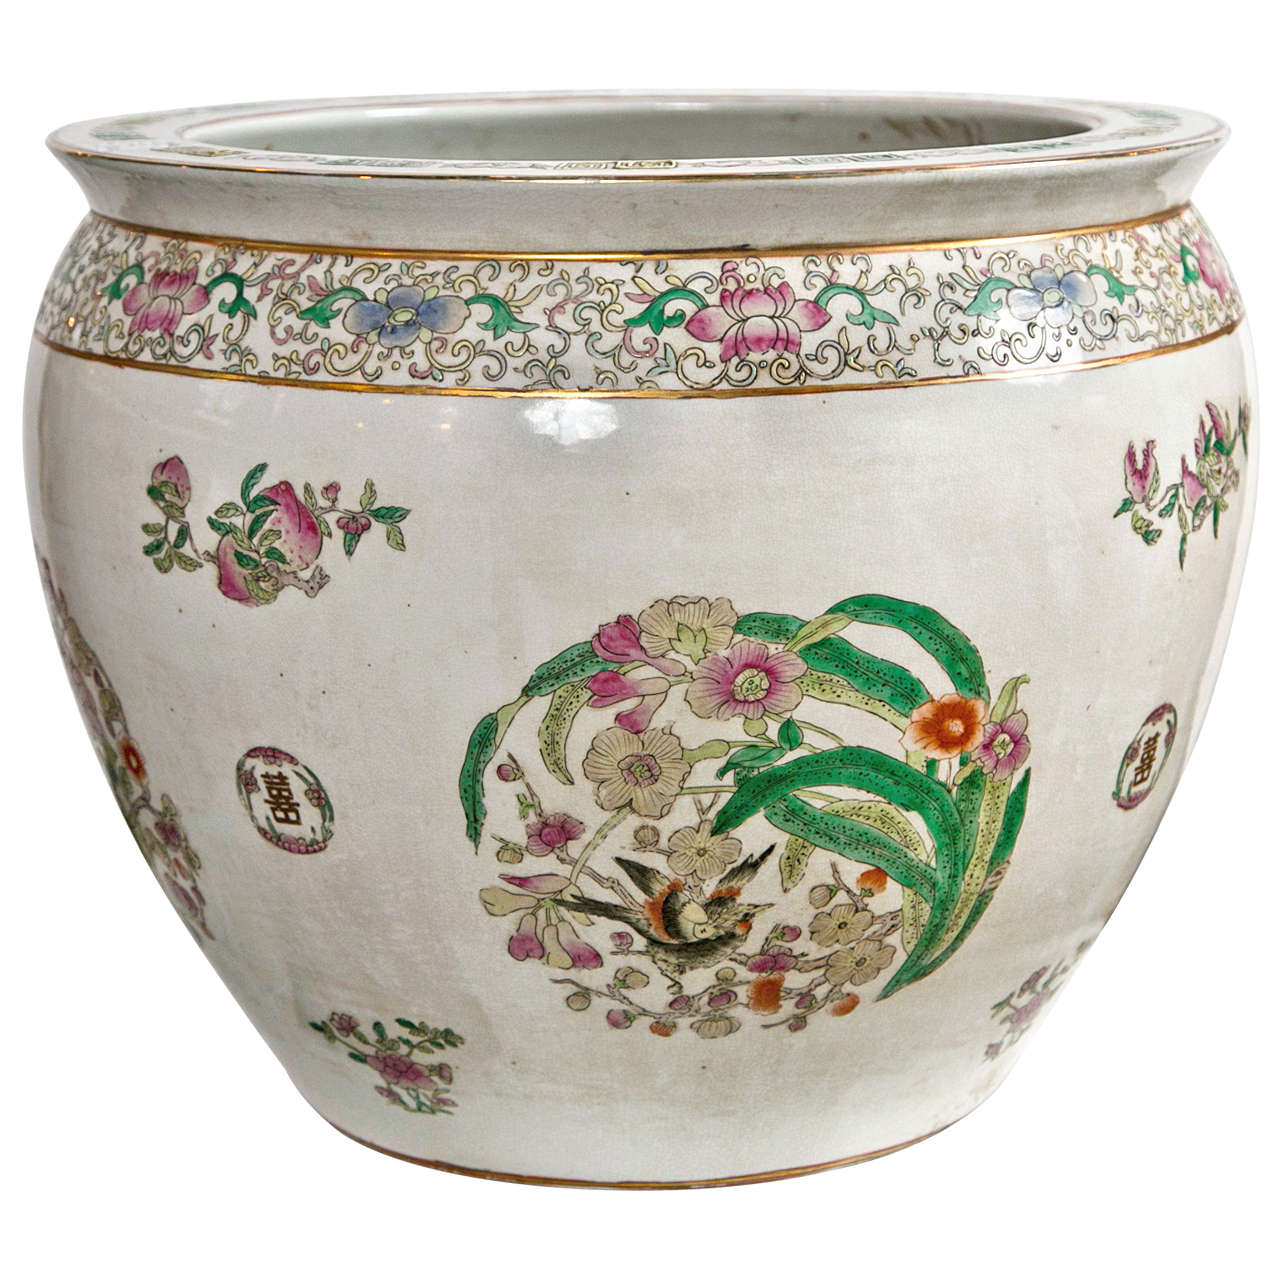 Large famile rose chinese export fish bowl for sale at 1stdibs for Large fish bowl